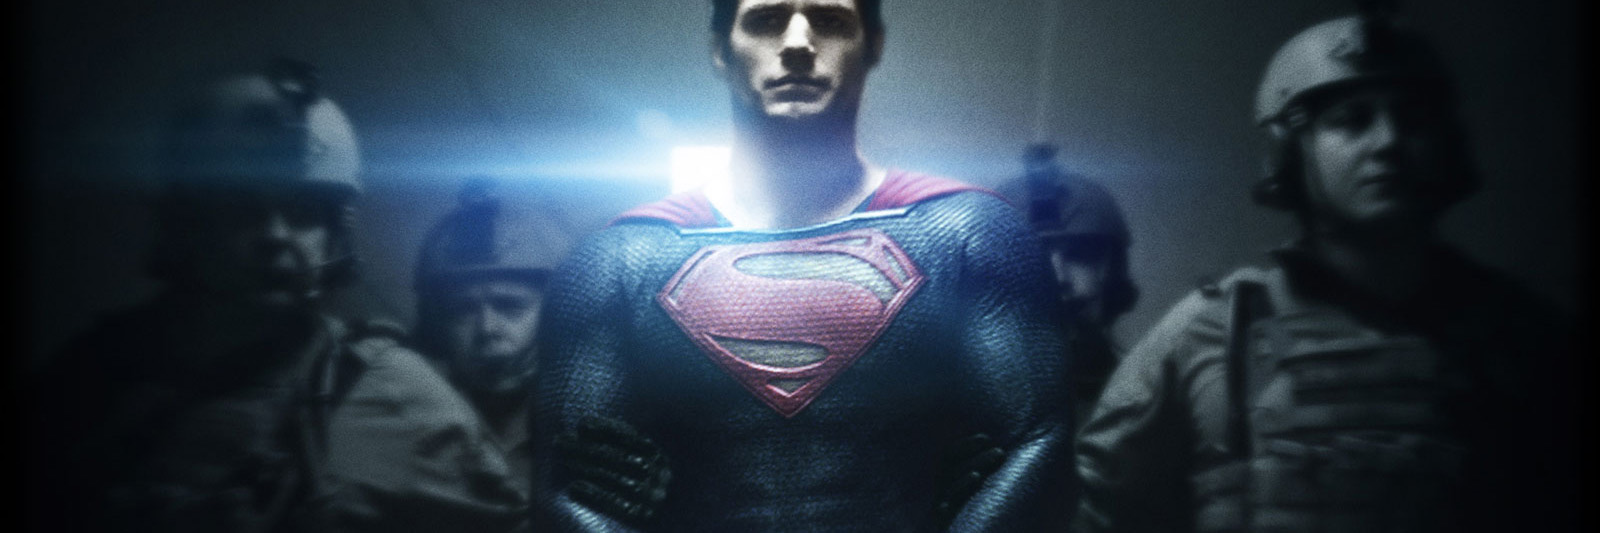 man-of-steel-1-1.jpg